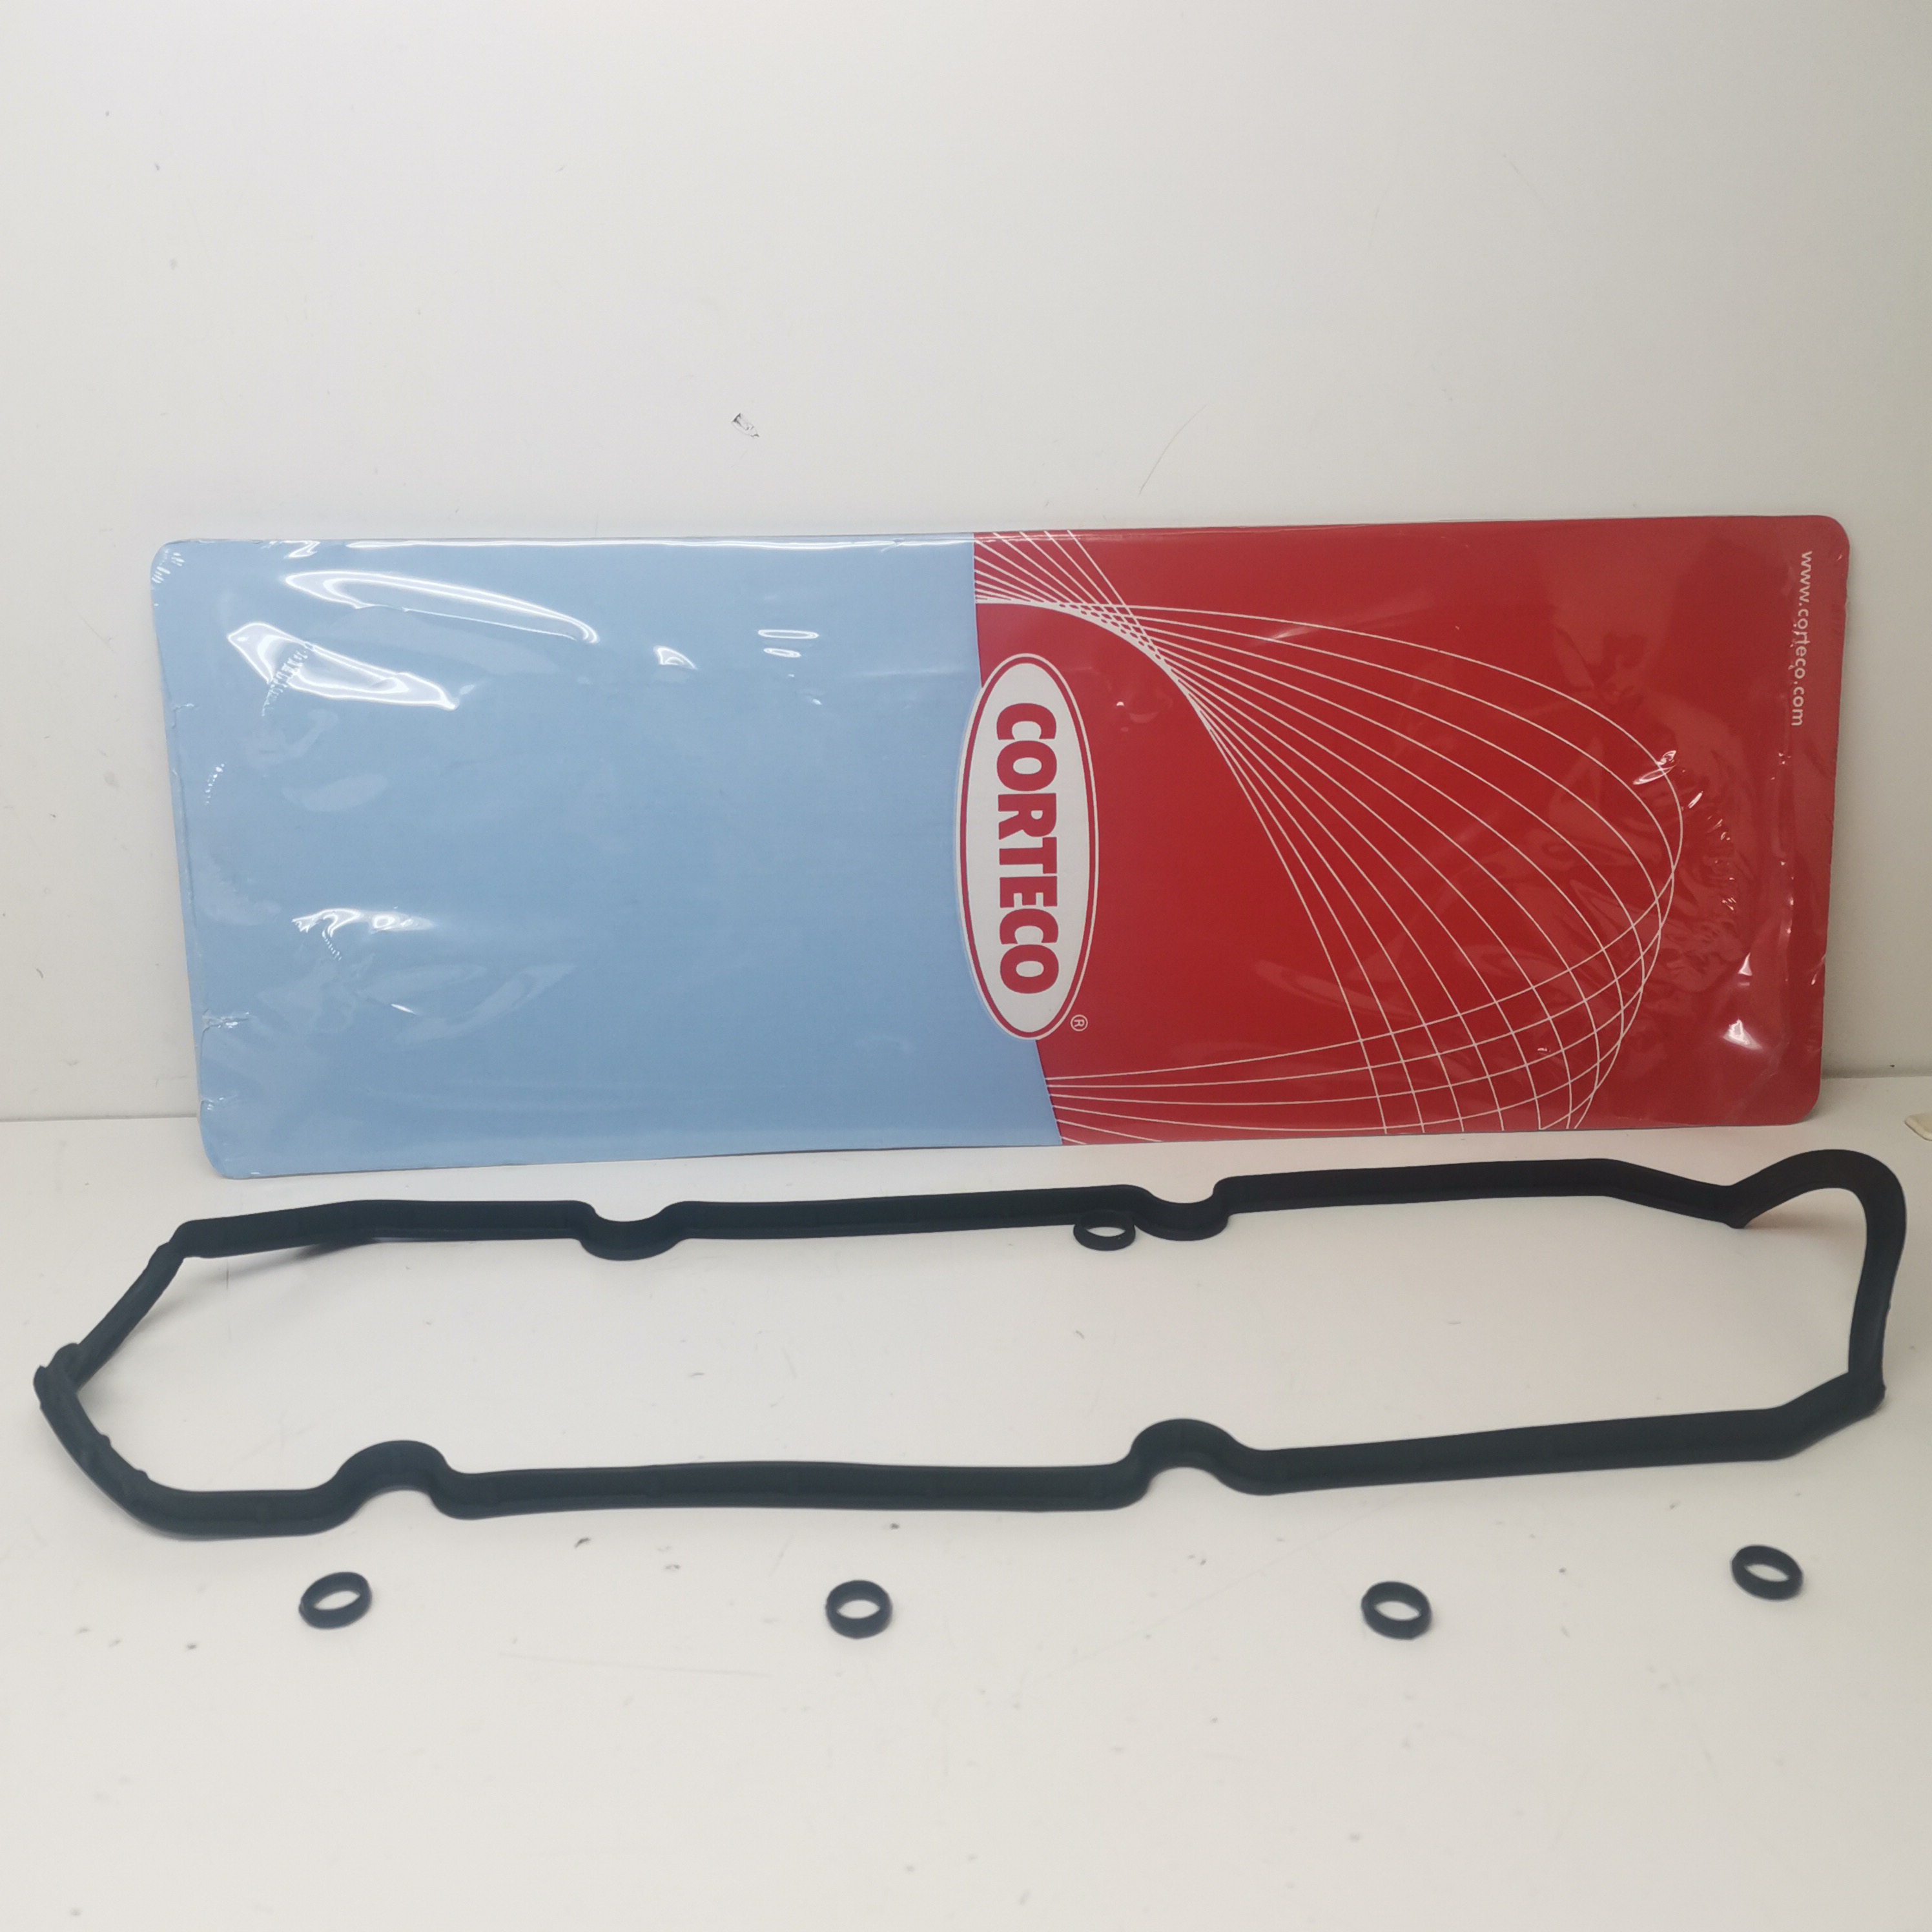 HEAD COVER GASKET FIAT 500 - PUNTO - ALFA - LANCIA CORTECO FOR 71740678